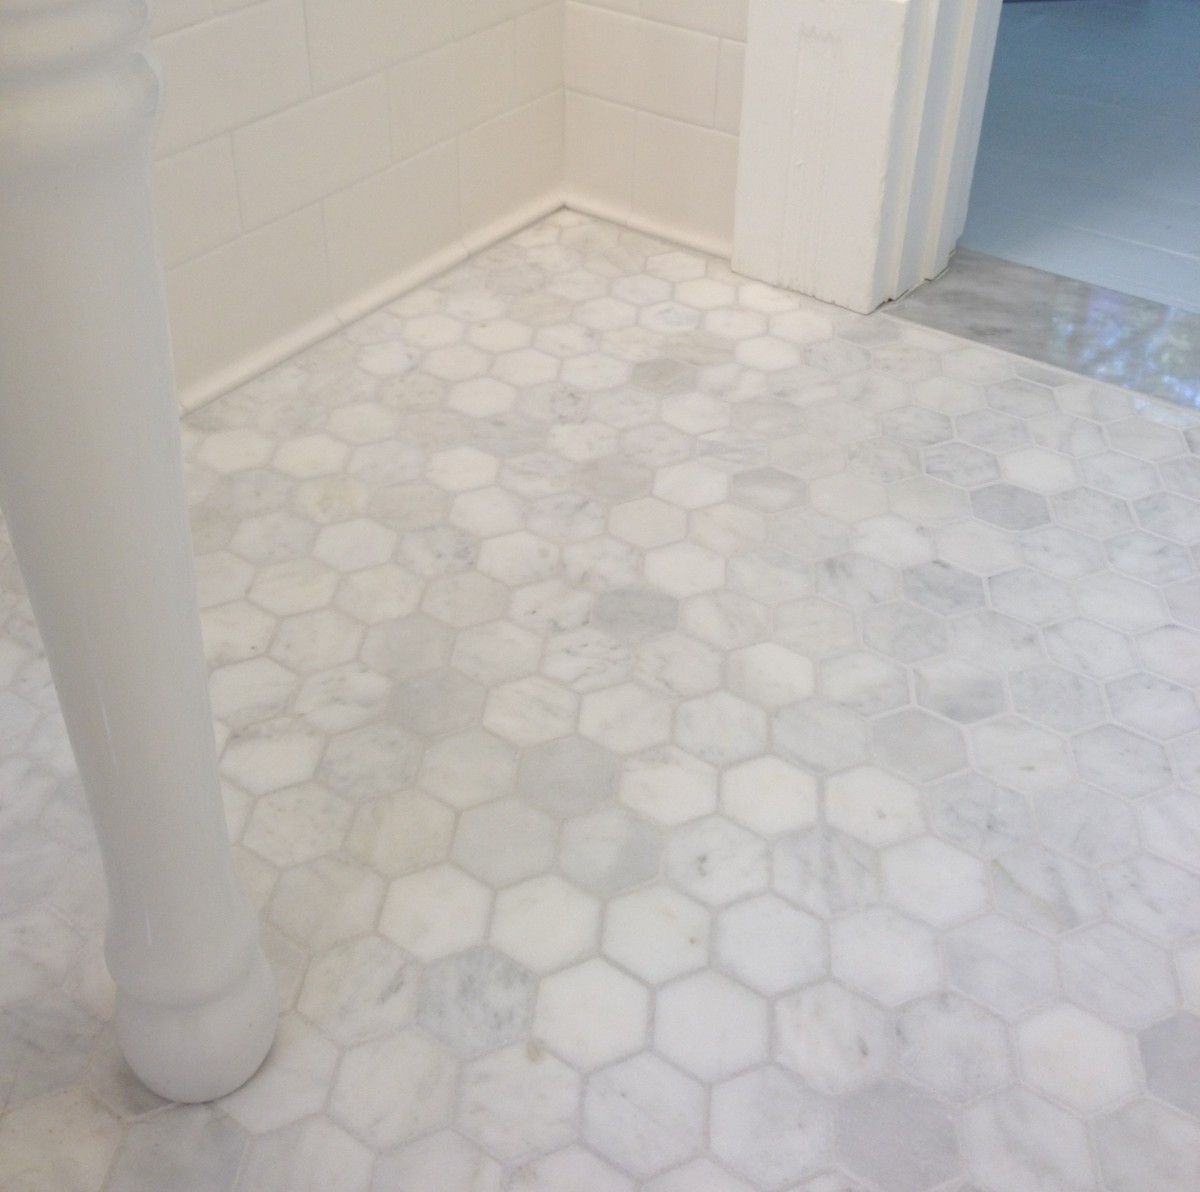 Wonderful 12X24 Floor Tile Patterns Tiny 18X18 Floor Tile Shaped 1X1 Ceramic Tile 2X4 Subway Tile Backsplash Young 4 Inch Floor Tile RedAccent Floor Tile 1 MLN Bathroom Tile Ideas | Bathroom | Pinterest | Bathroom Tiling ..